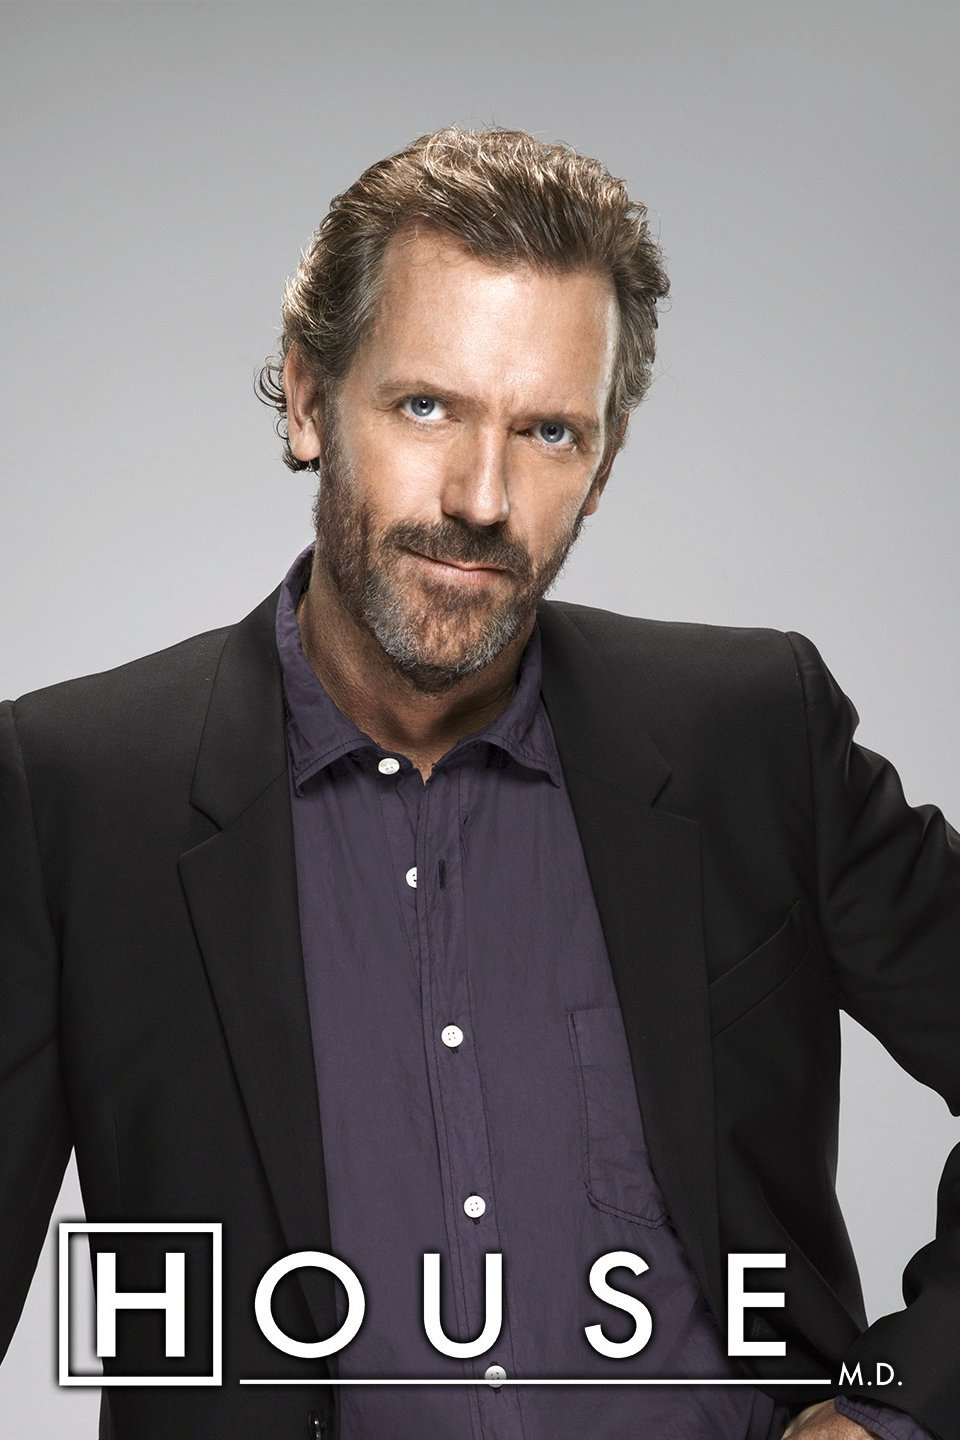 House Television Series Poster - NBC Universal Television Distribution